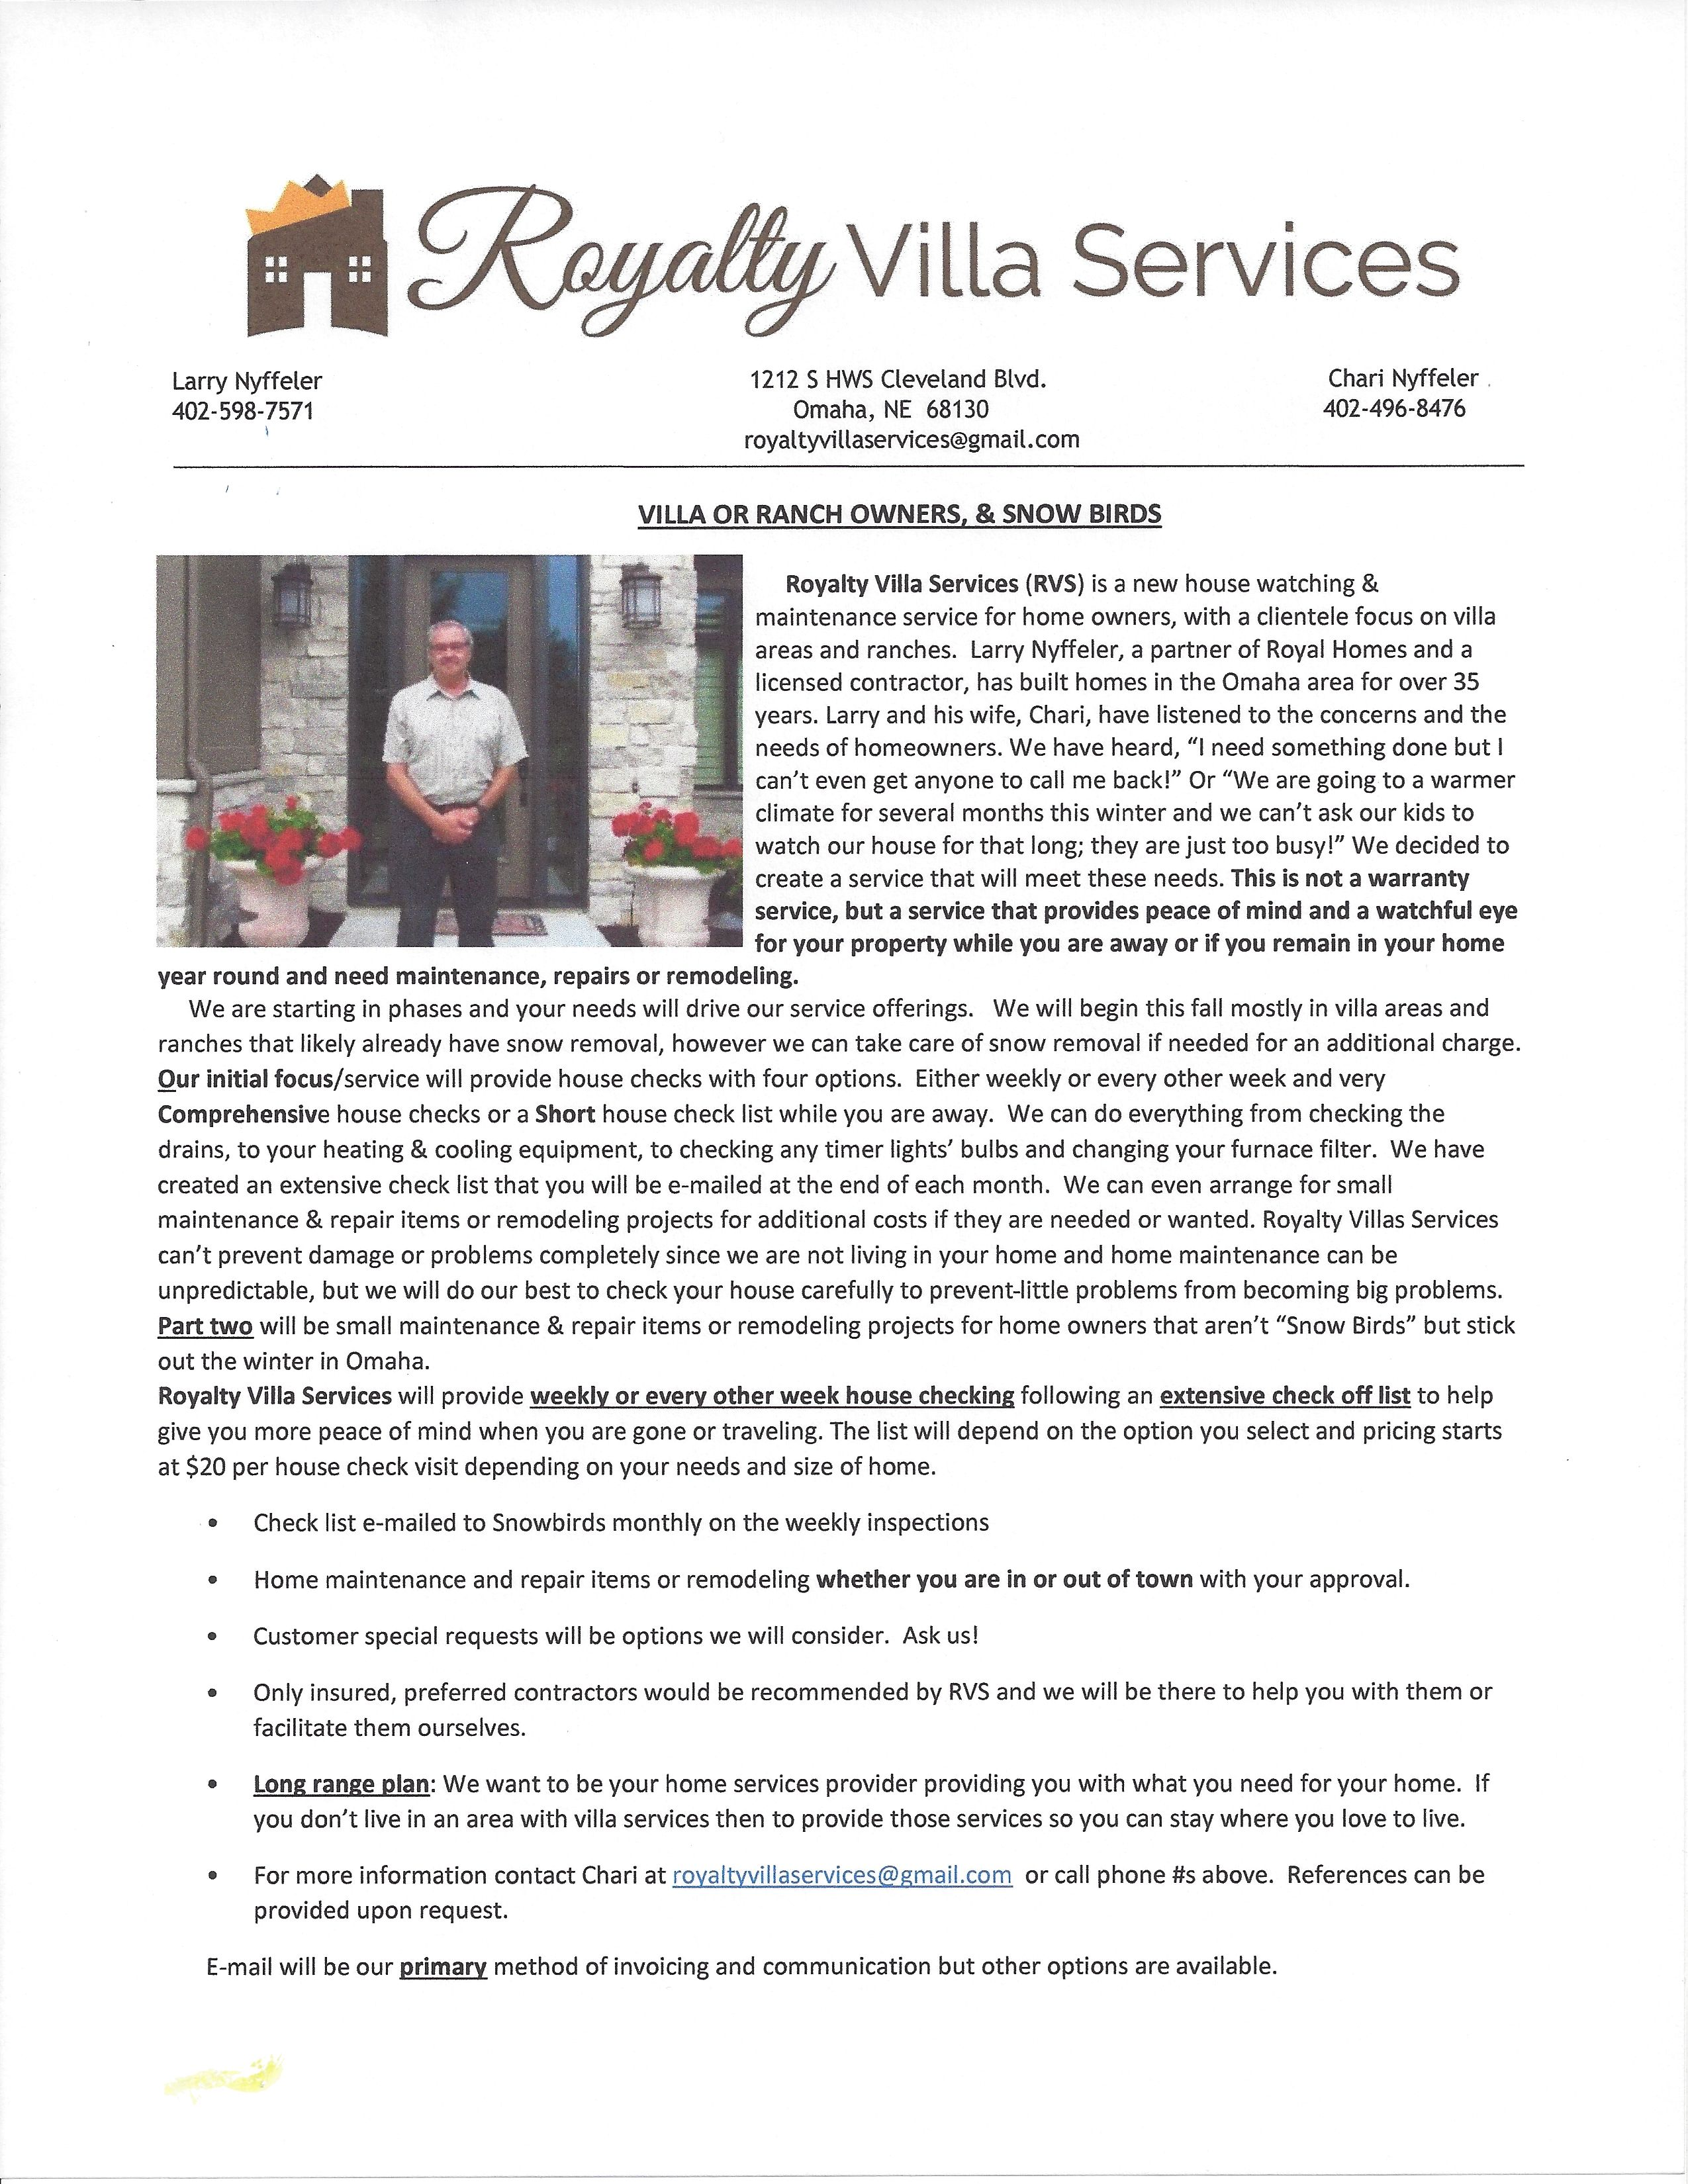 Royalty Villa Services Is A New House Watching Maintenance Service For Home Owners This Is A Great Service For Snow Birds New Homes Homeowner Empty Nesters